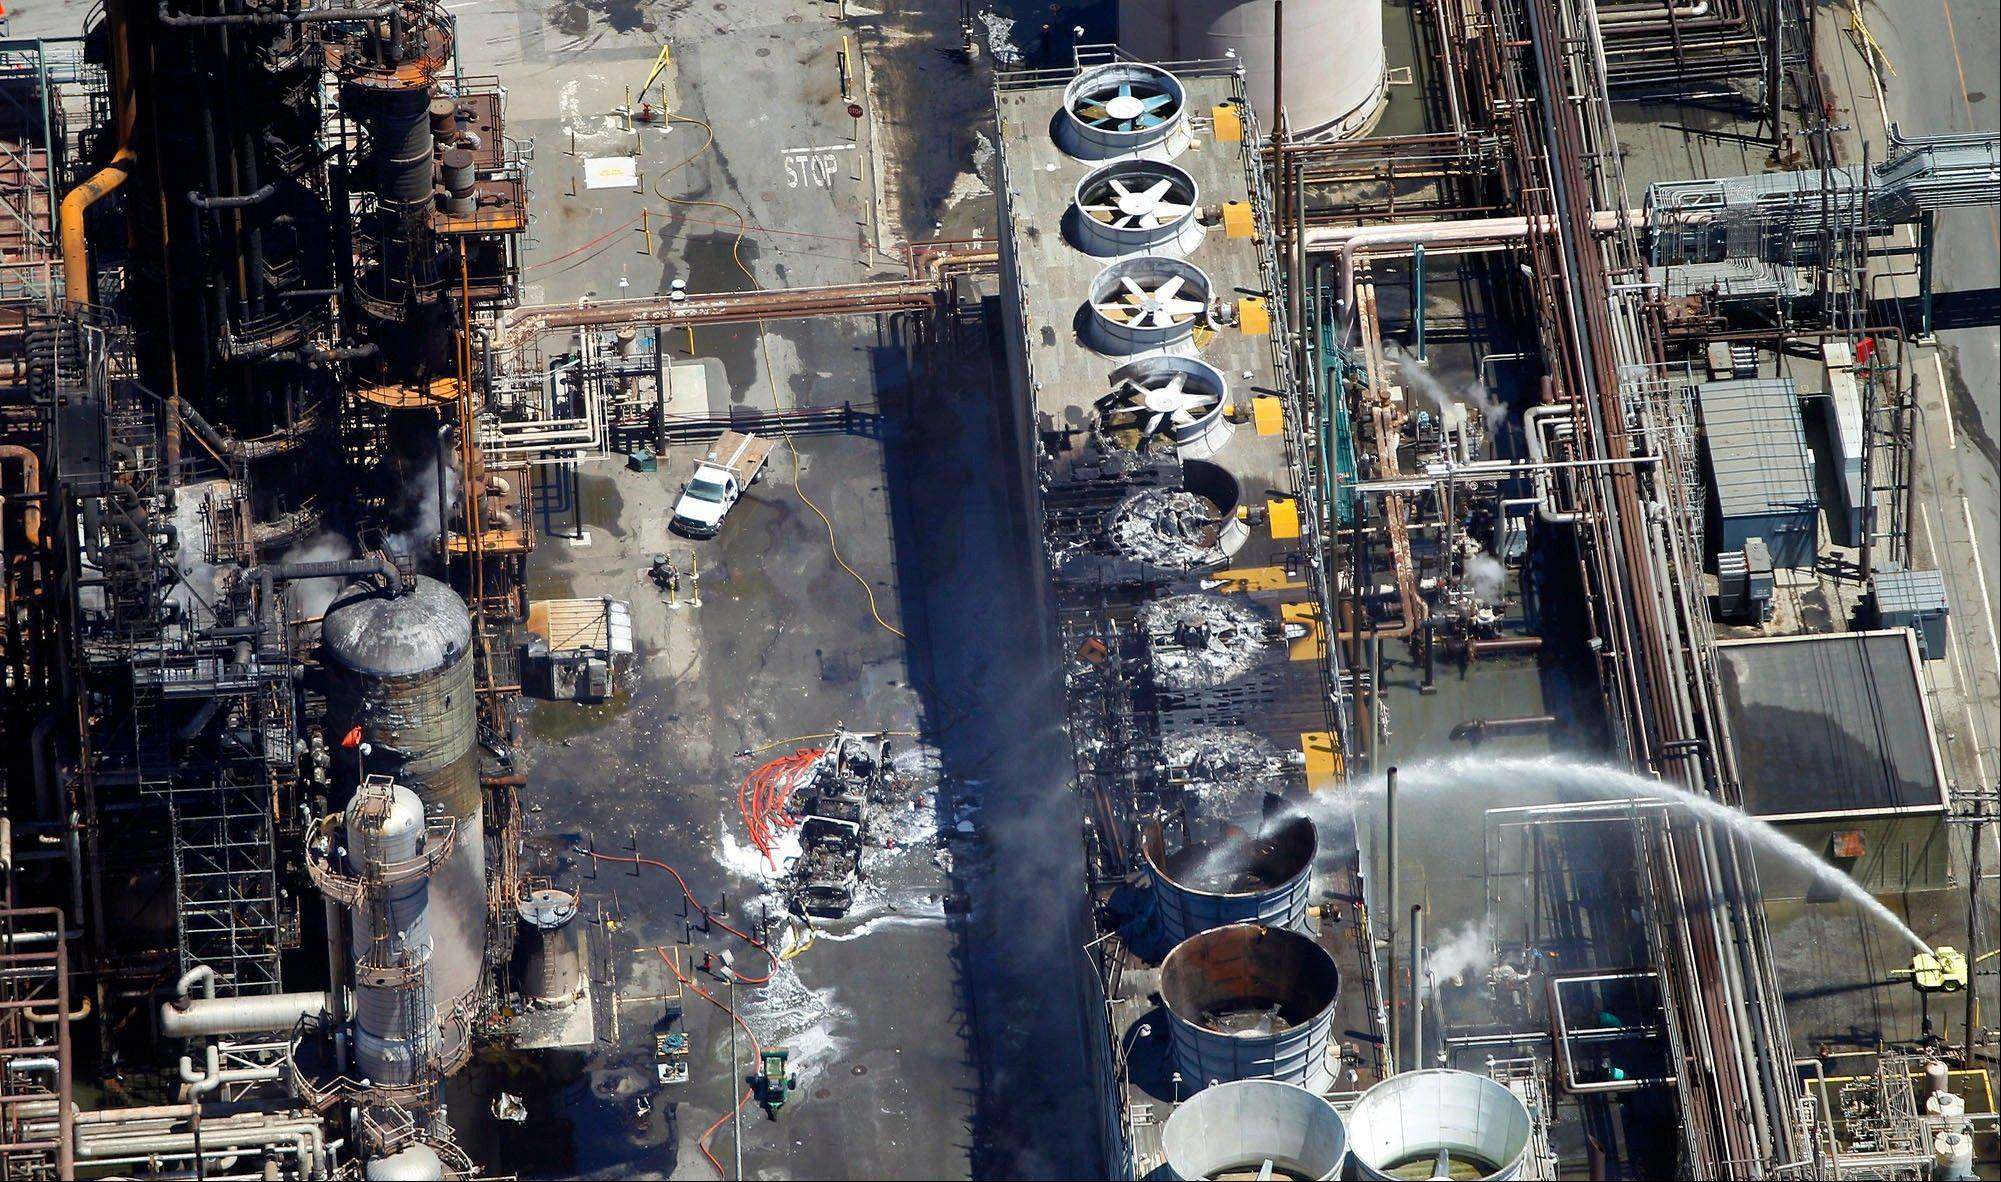 A massive Chevron oil refinery fire that sent hundreds of people rushing to hospitals and is pushing West Coast gas prices higher was just the latest pollution incident at the facility that records show has increasingly violated air quality rules over the past five years.